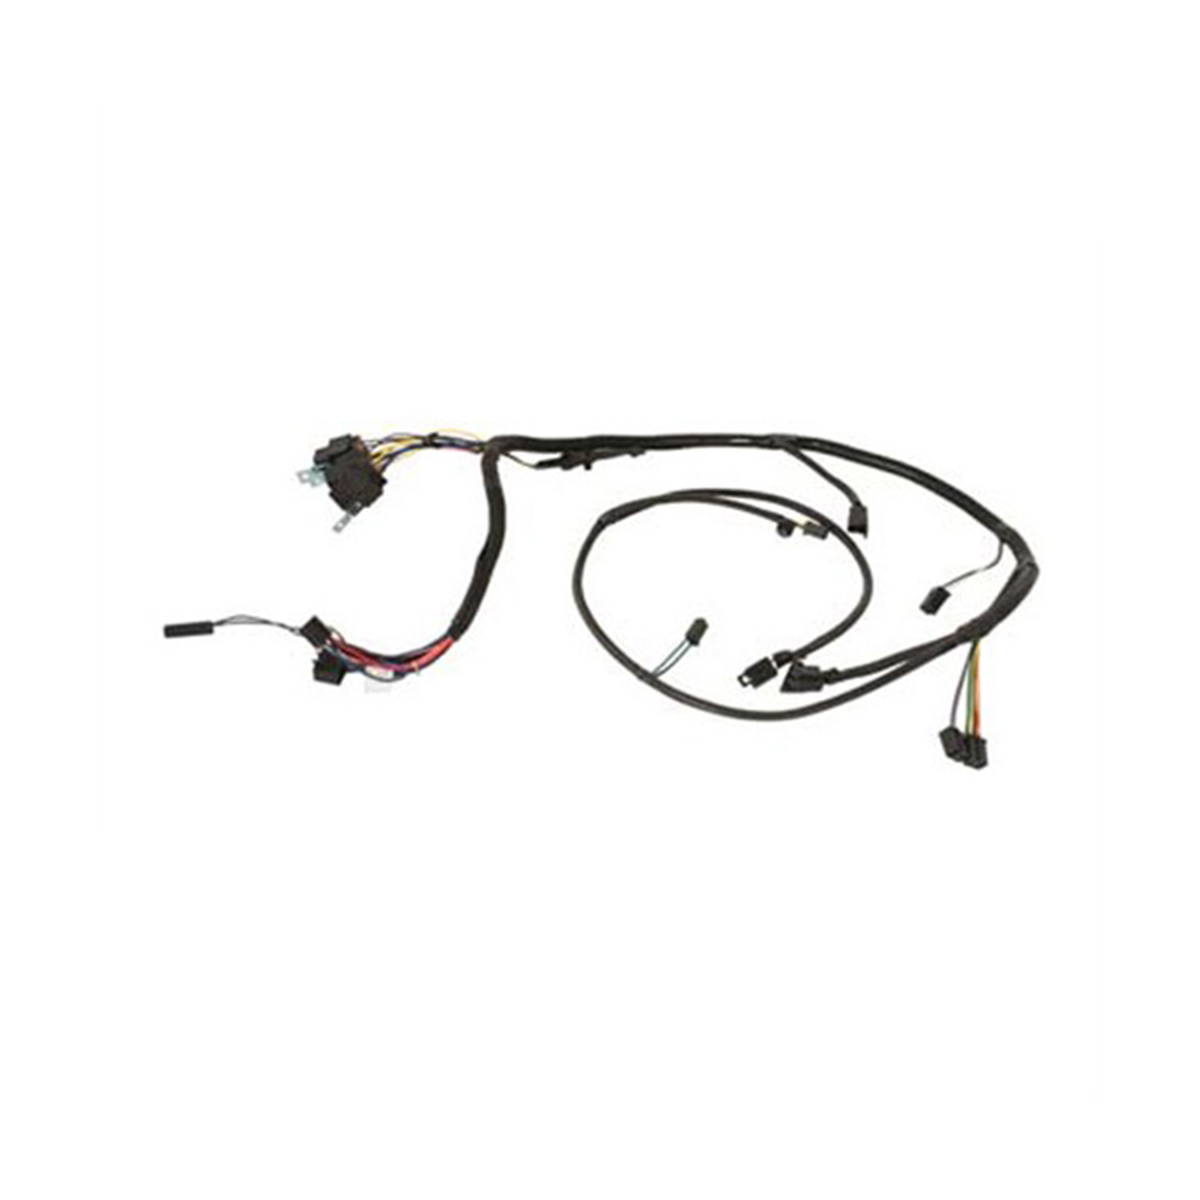 500014 wiring harnesses for dixie chopper lawn mowers dixie chopper wiring diagram at n-0.co